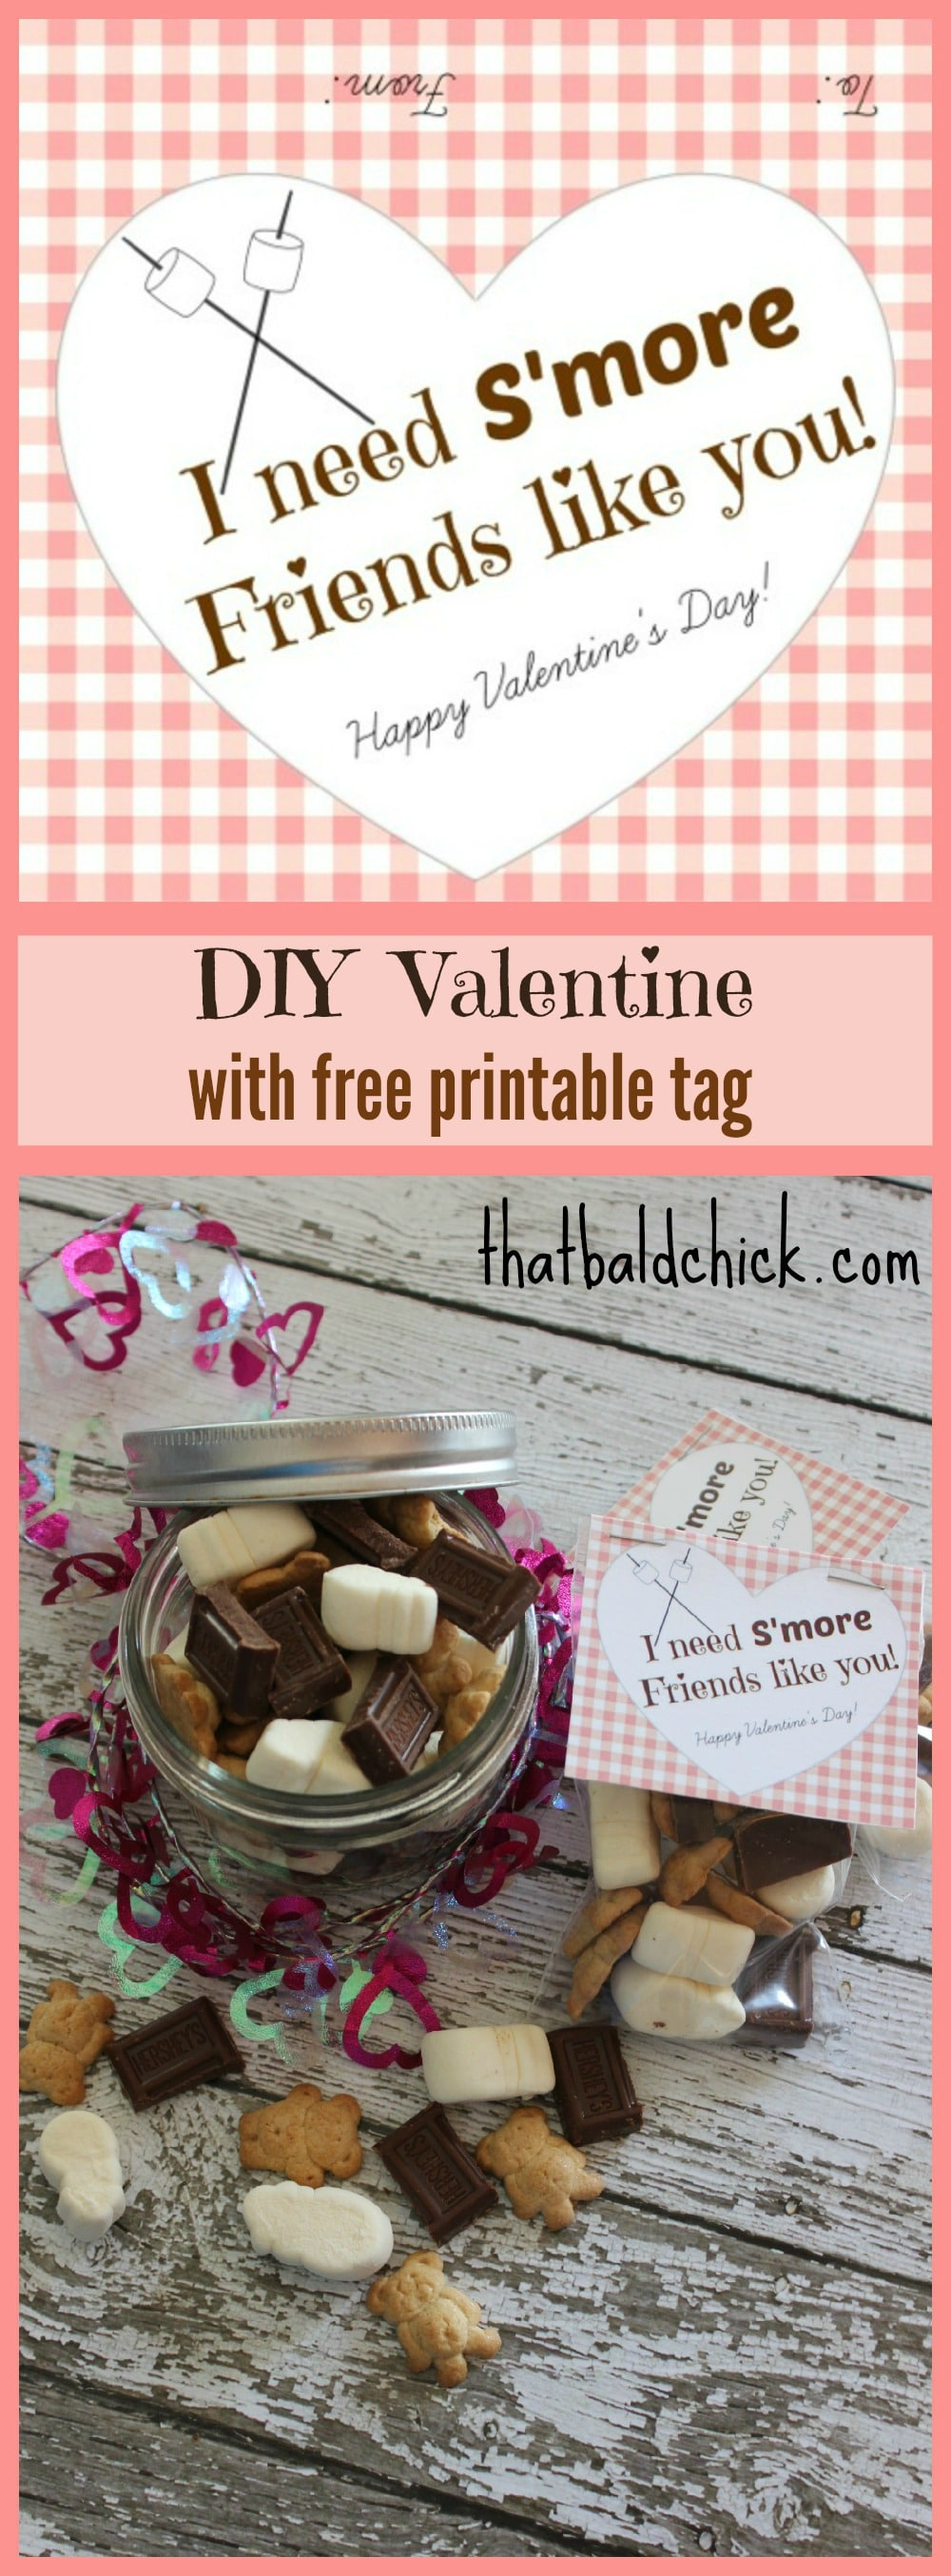 I Need S'More Friends Like You DIY Valentine with Free Printable Tag @thatbaldchick